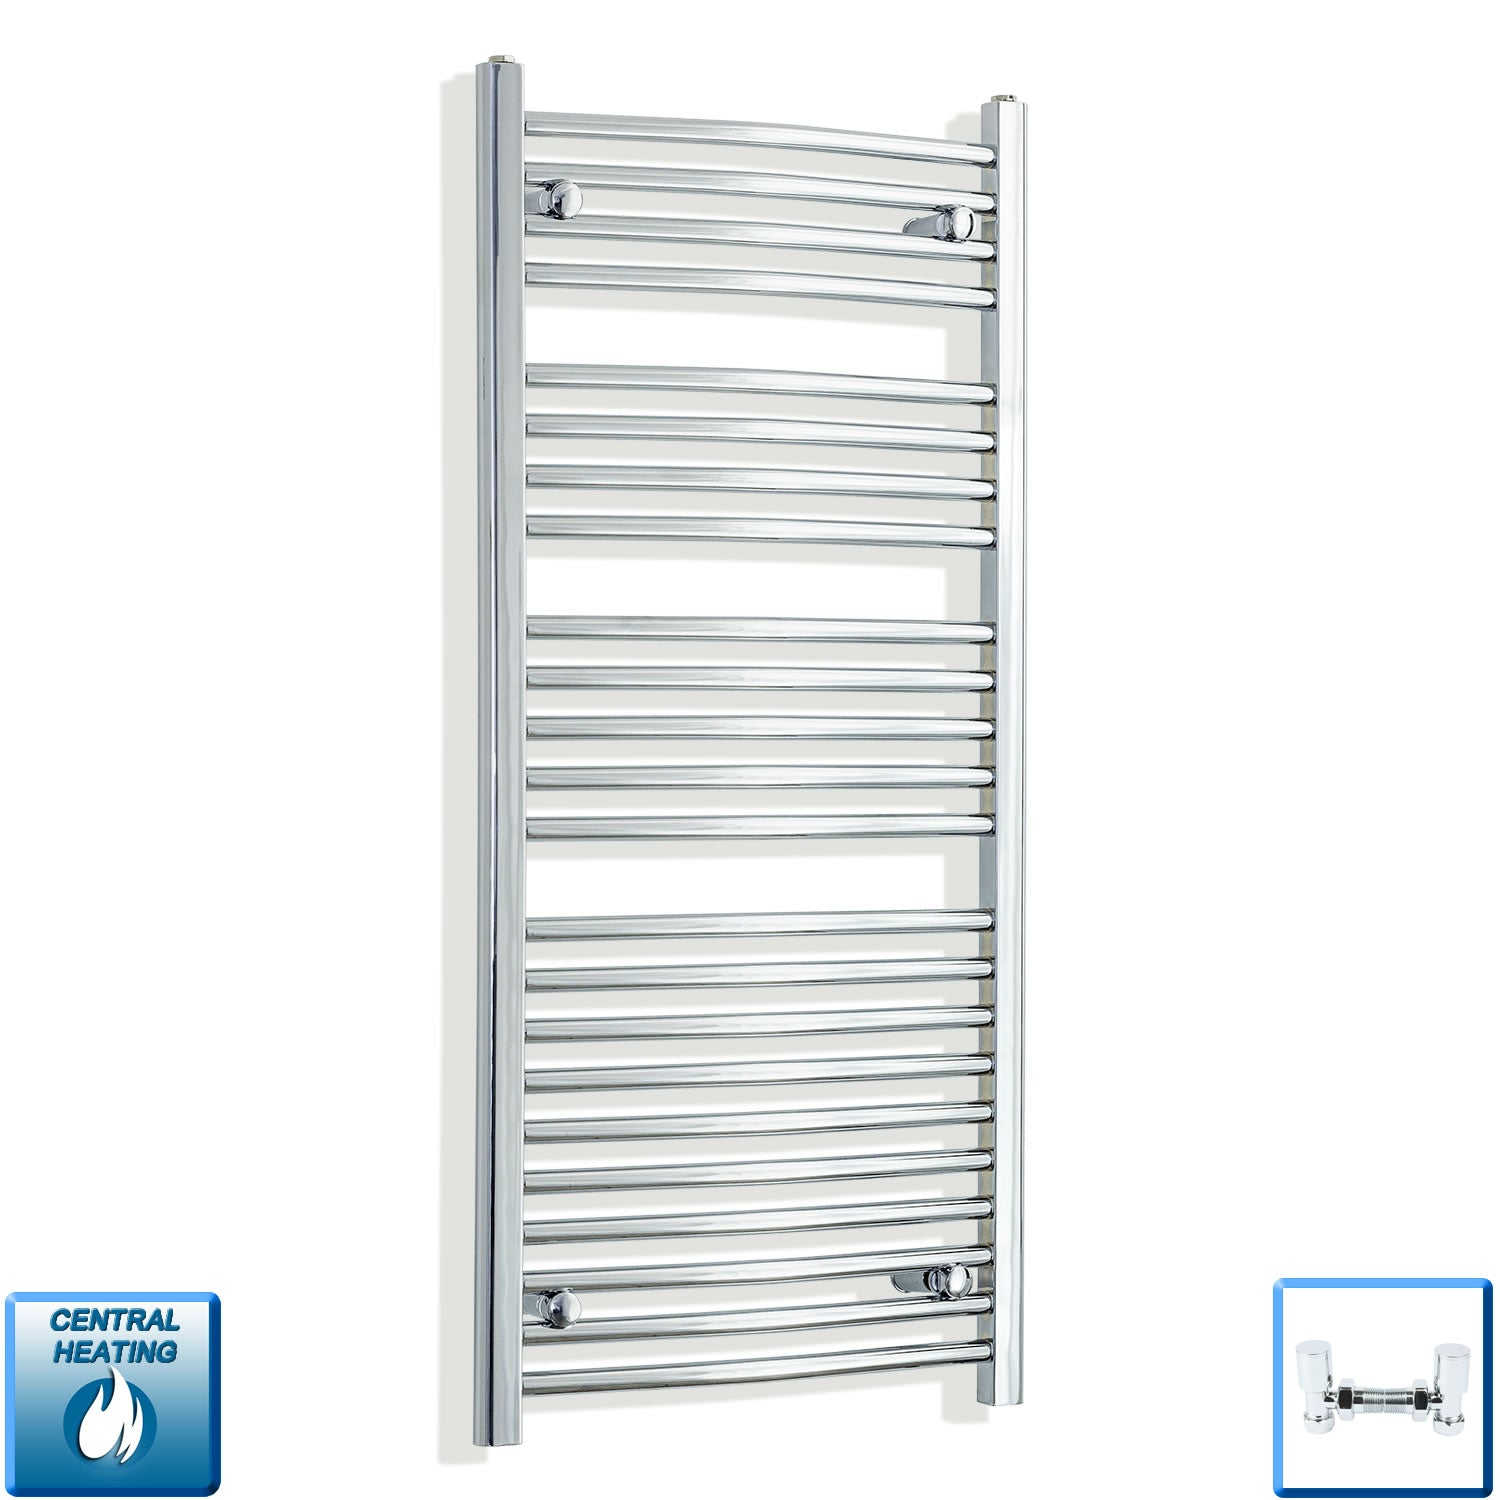 550mm Wide 1200mm High Chrome Towel Rail Radiator With Angled Valve